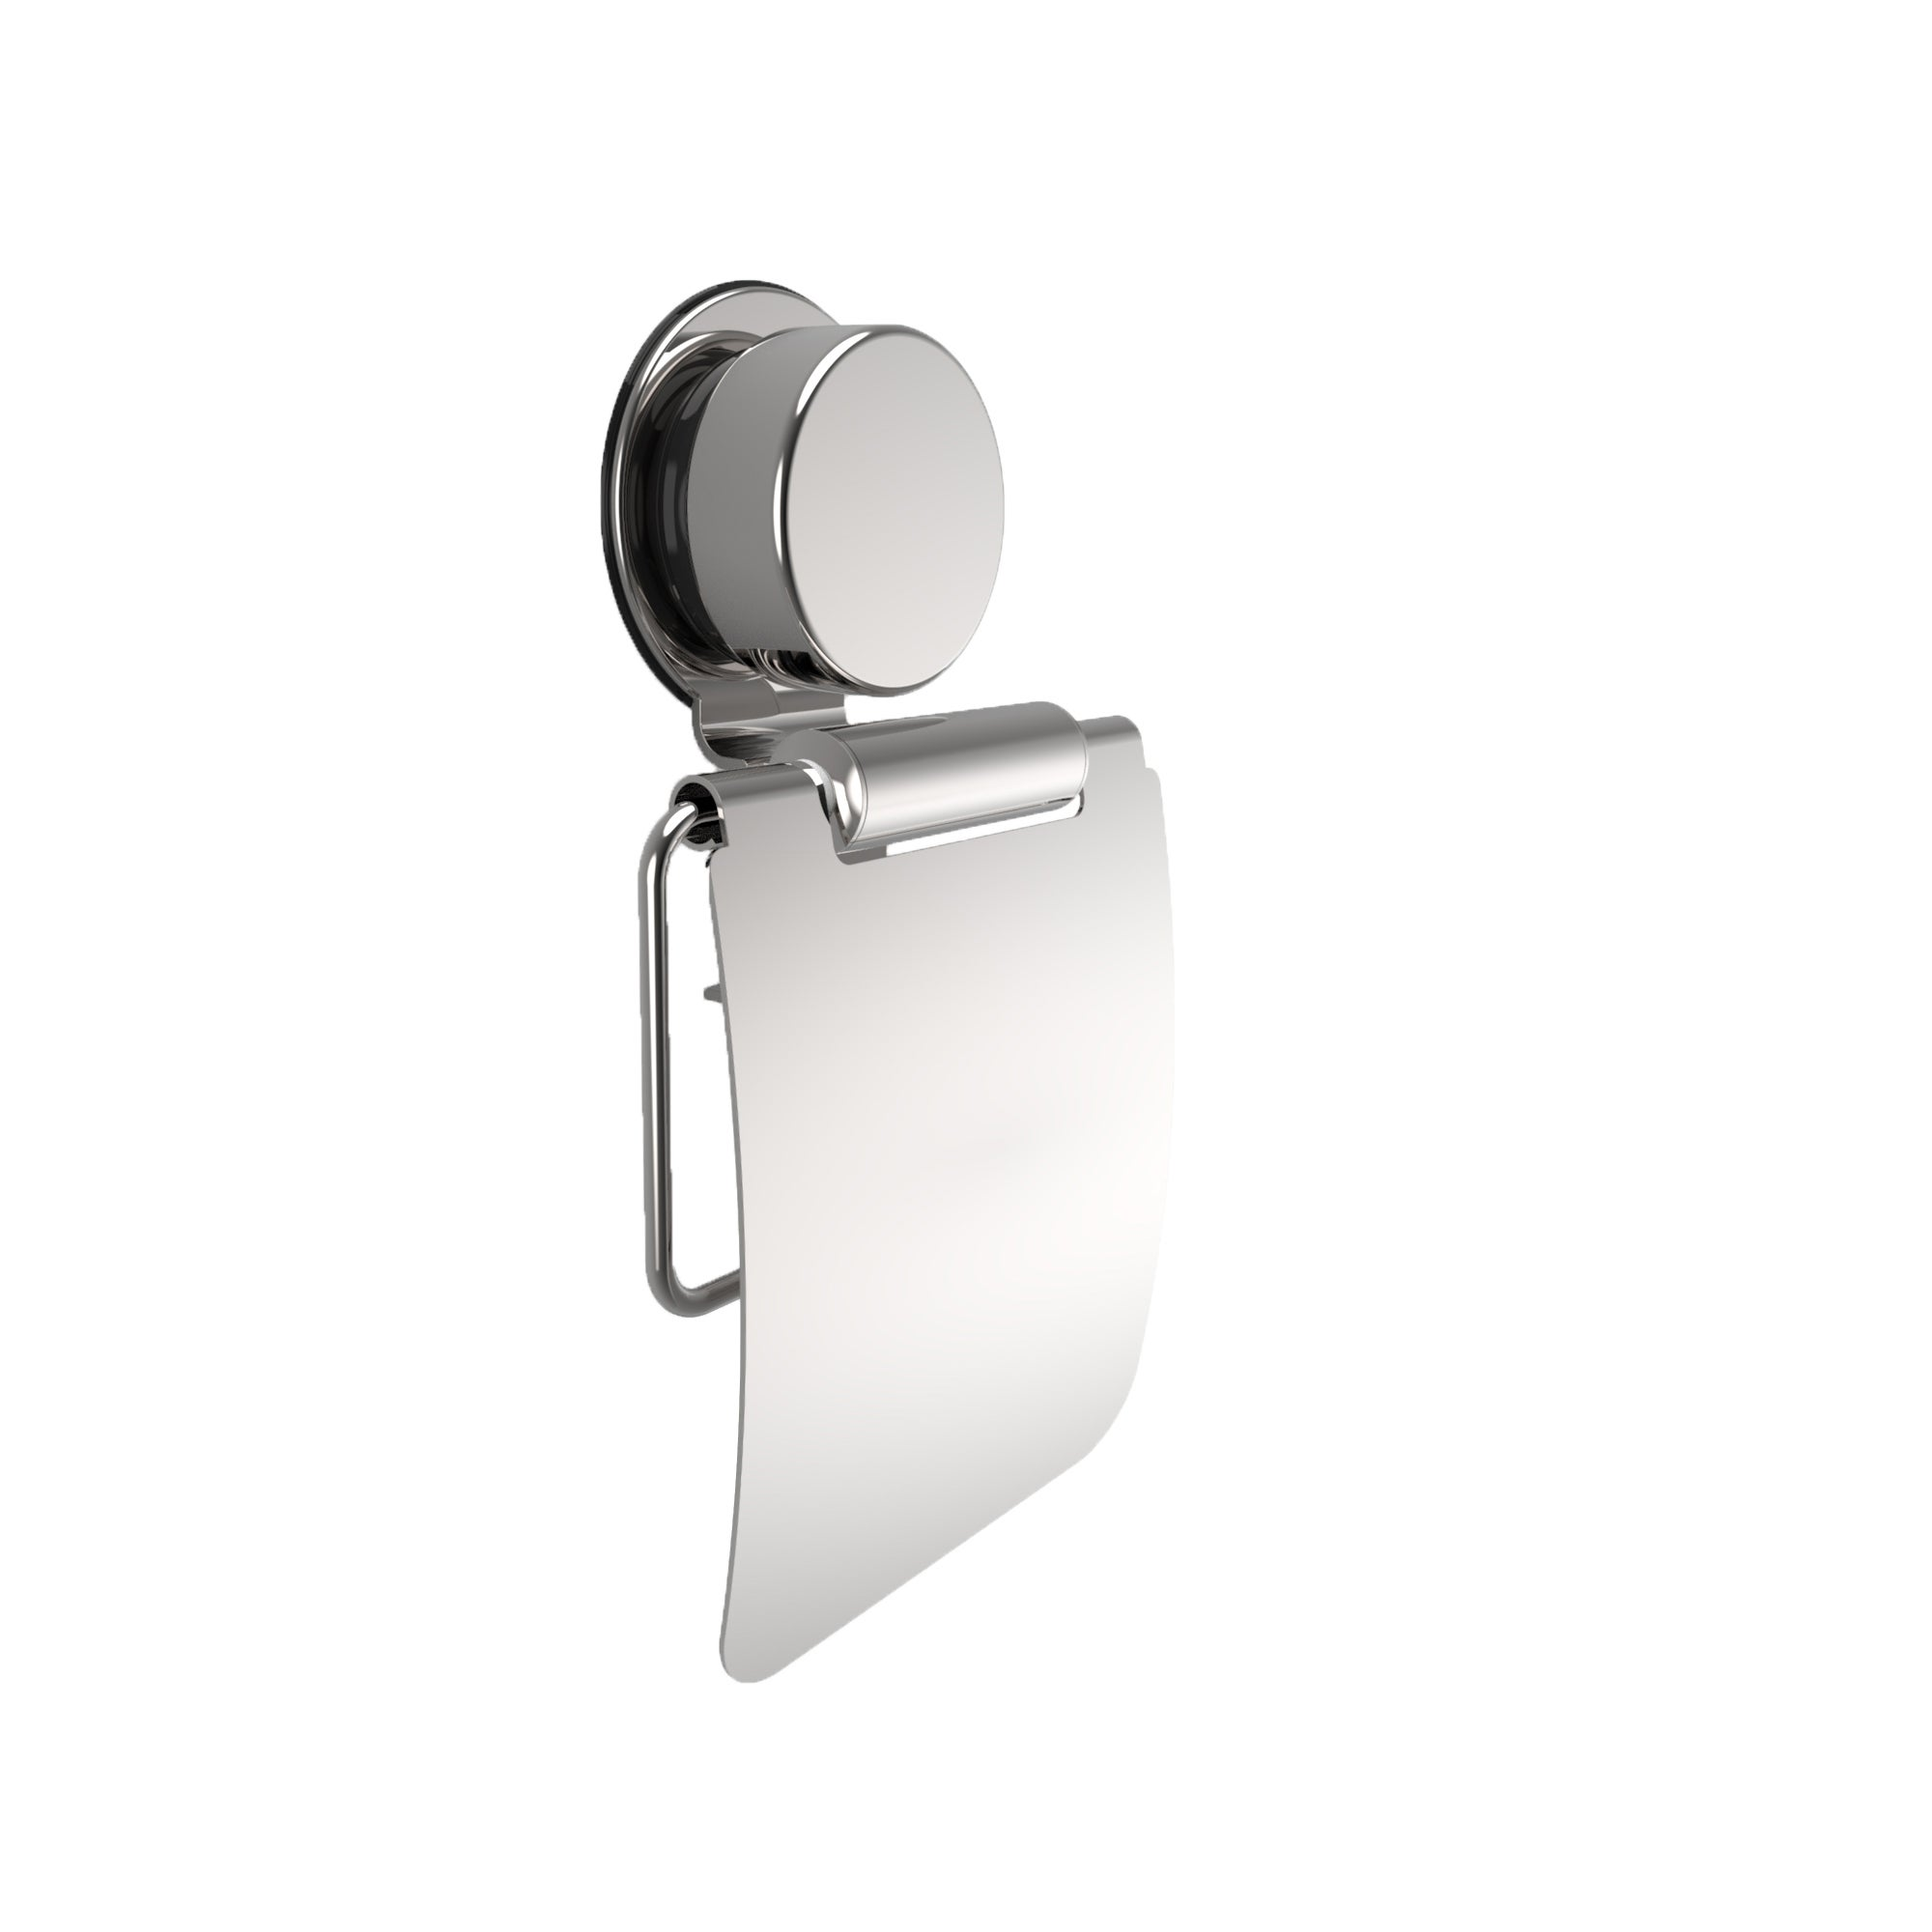 Wall Mounted Toilet Paper Roll Holder with Flap -Toilet T...